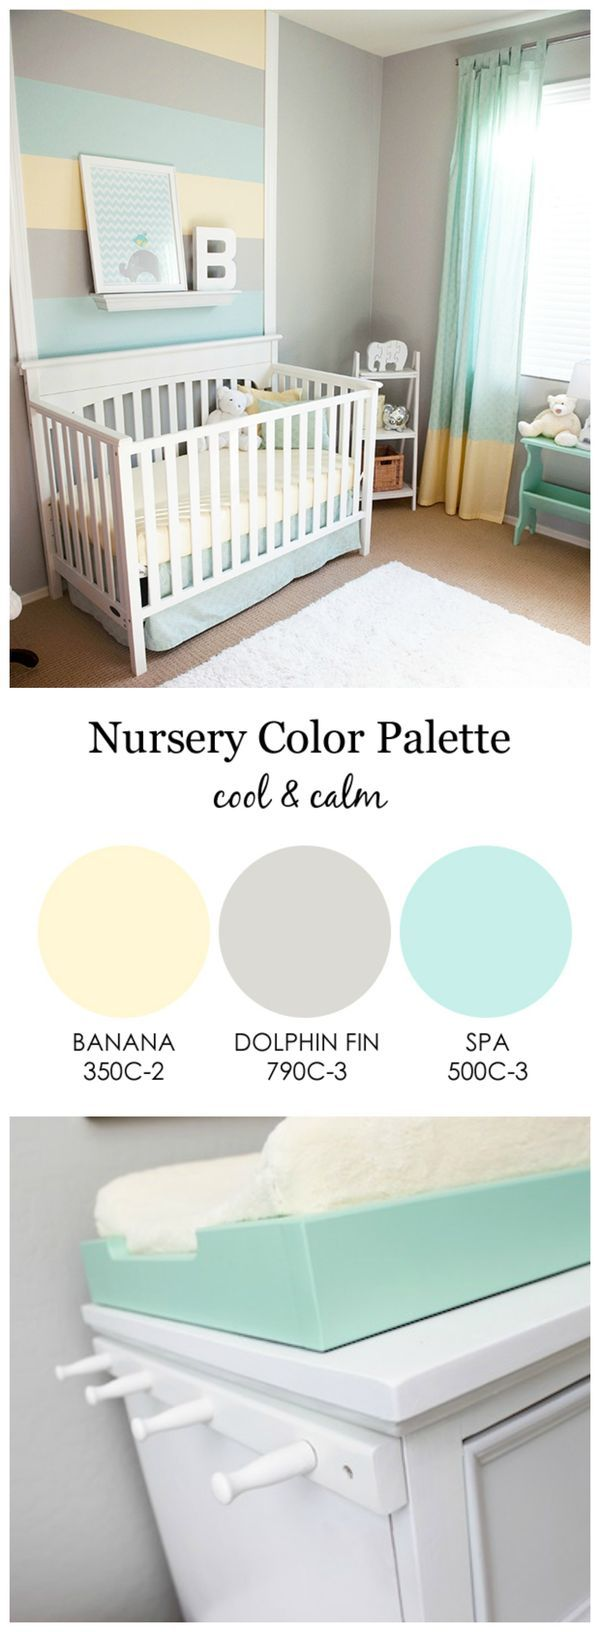 best 25+ nursery ideas ideas on pinterest | nursery, babies